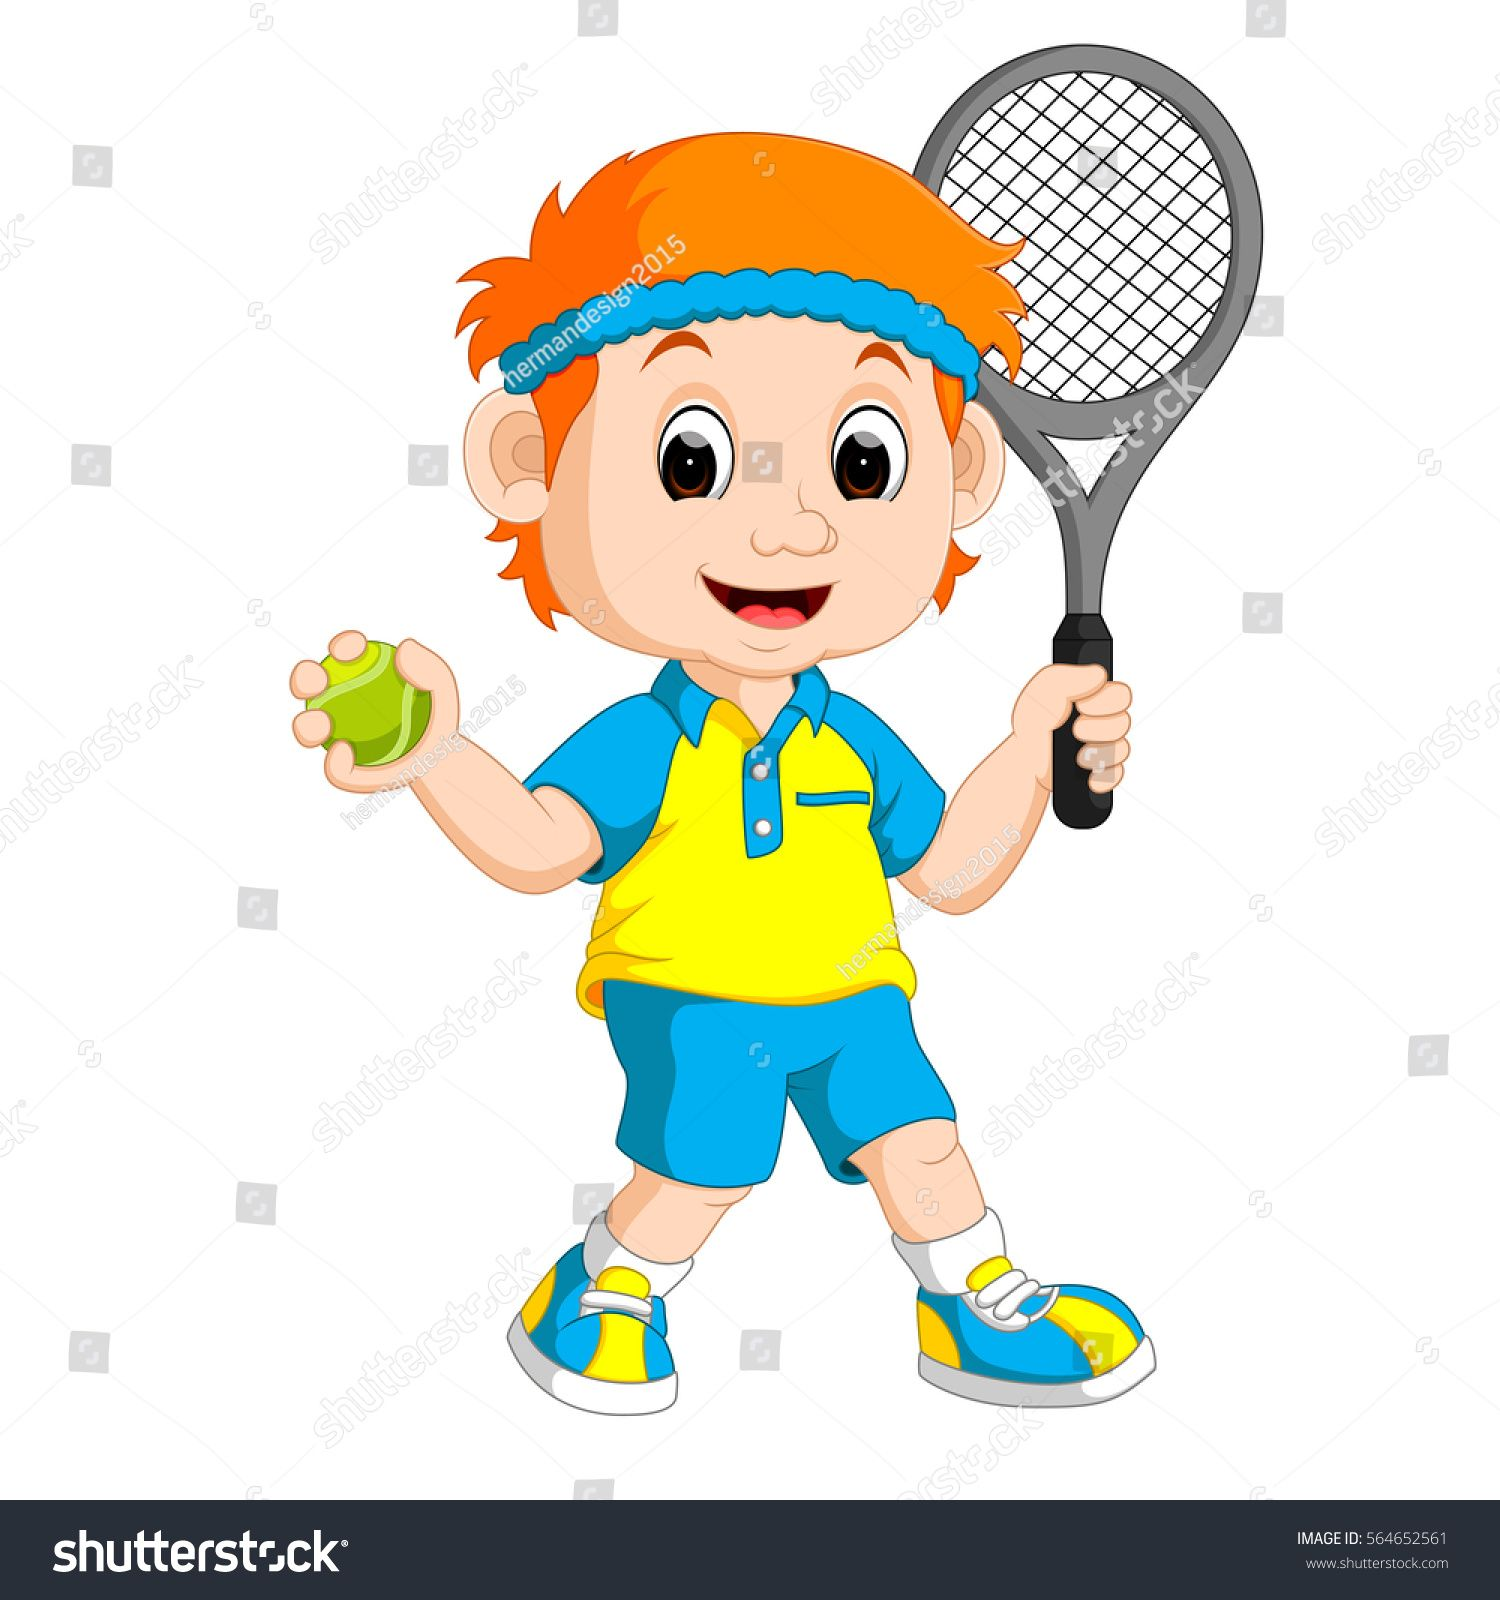 Vector Illustration Of A Boy Playing Lawn Tennis Lawn Tennis Boys Playing Tennis